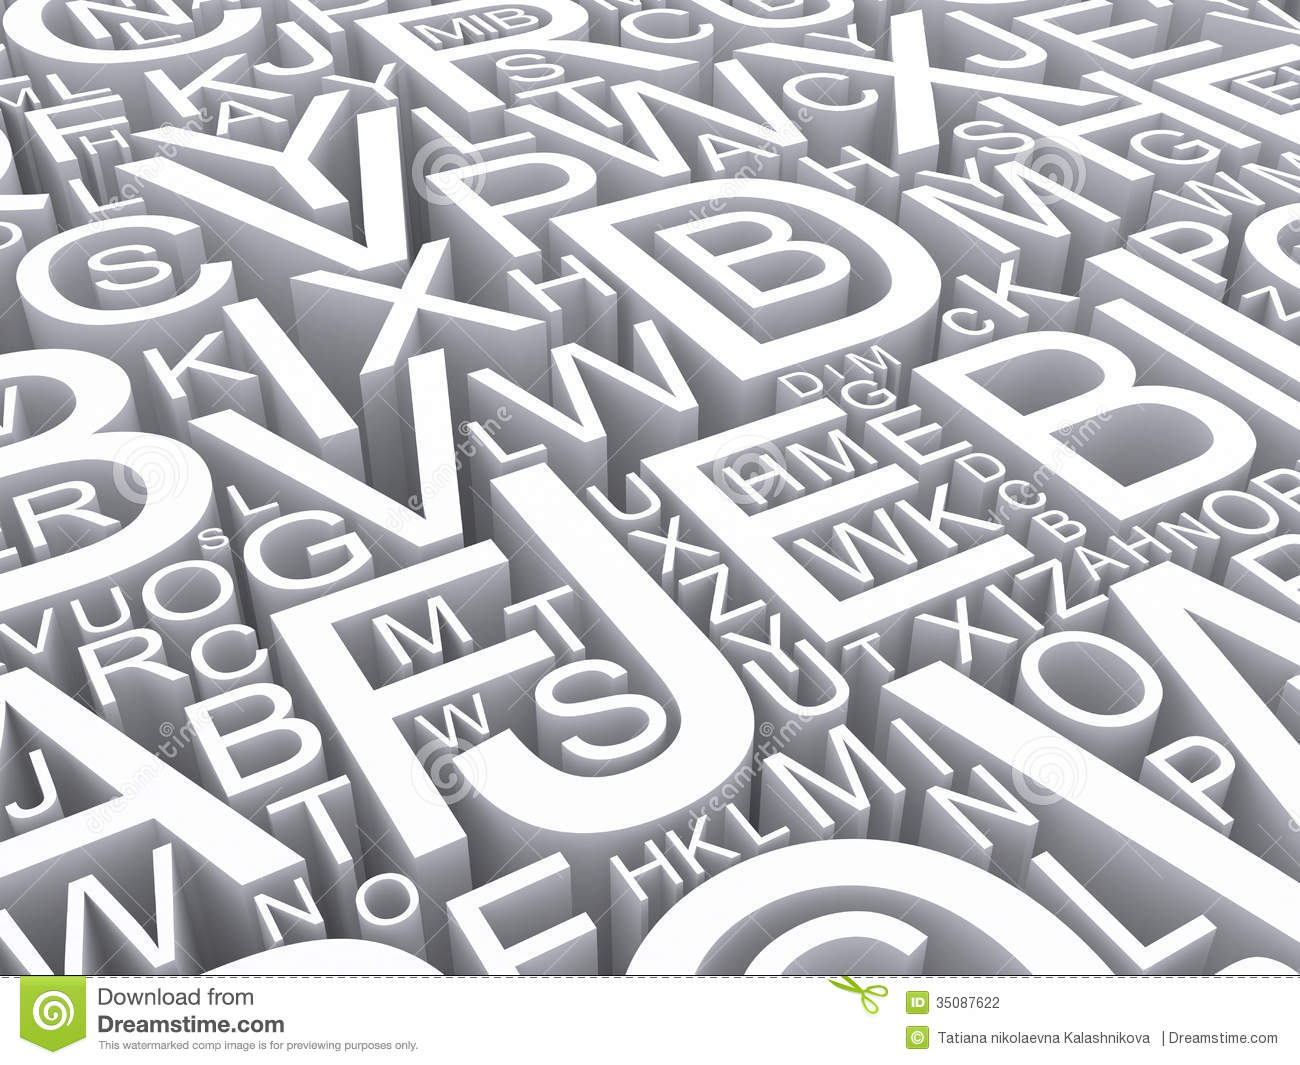 English Alphabet Love Wallpaper : Letters Of The English Alphabet. Stock Illustration - Image: 35087622